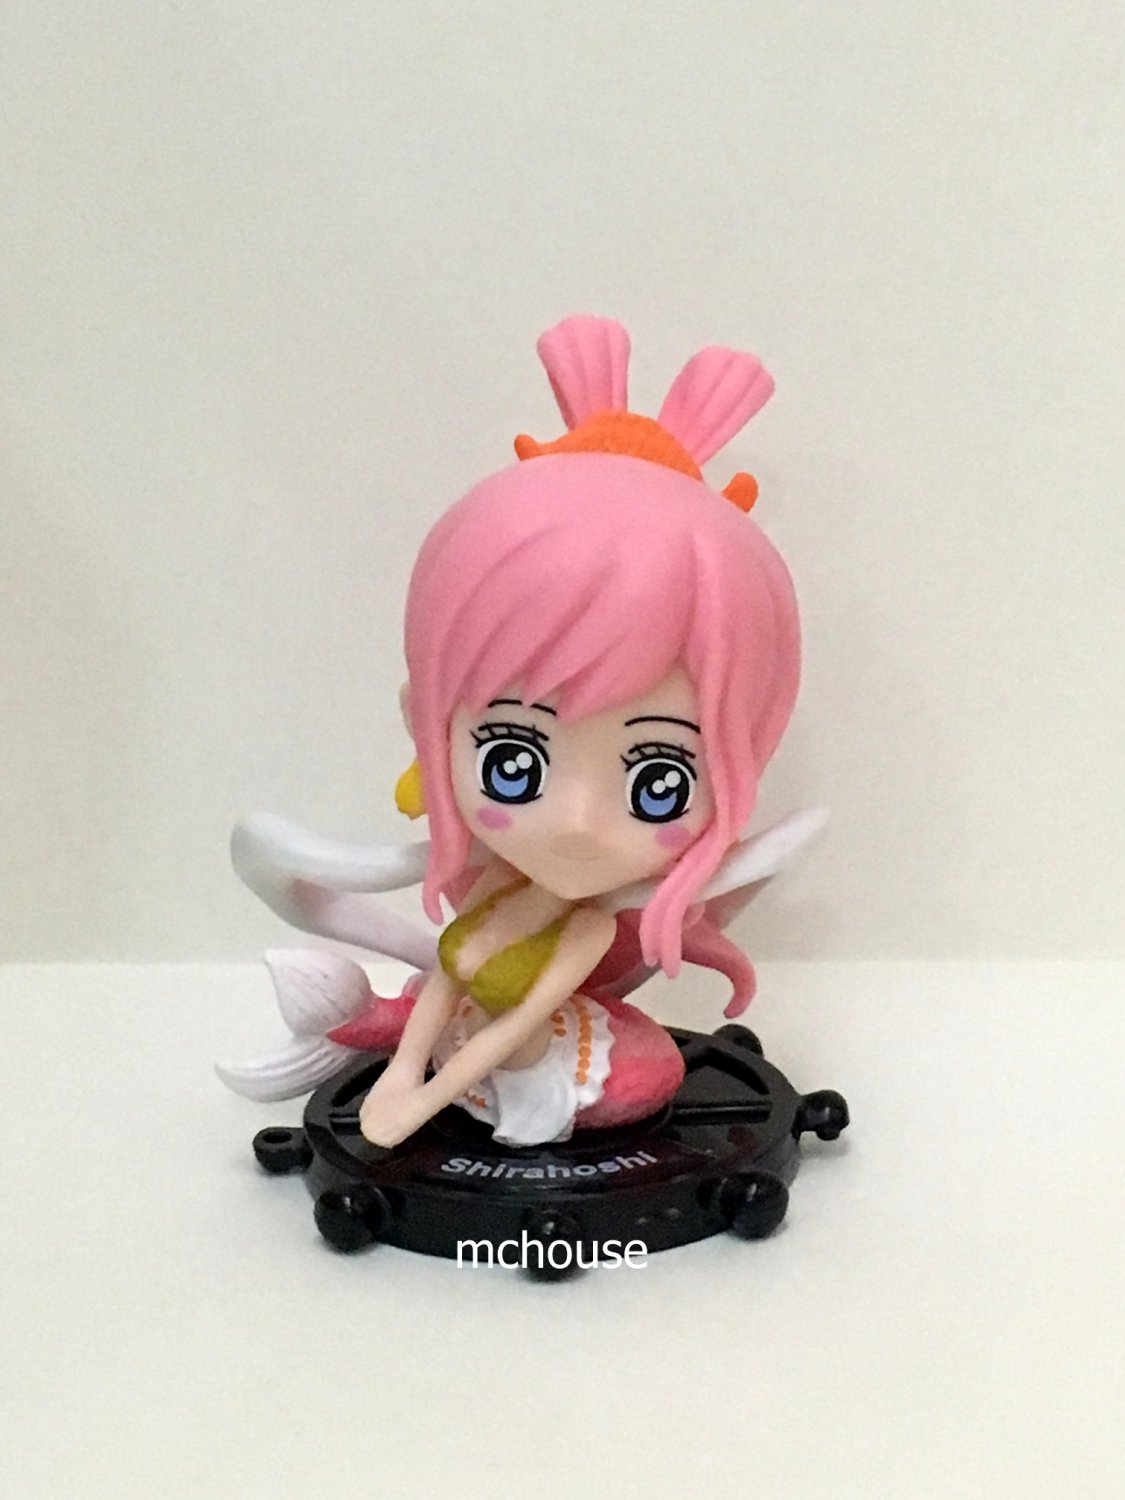 7-11 HK One Piece The New World 2015 Figurine with a prop Shirahoshi